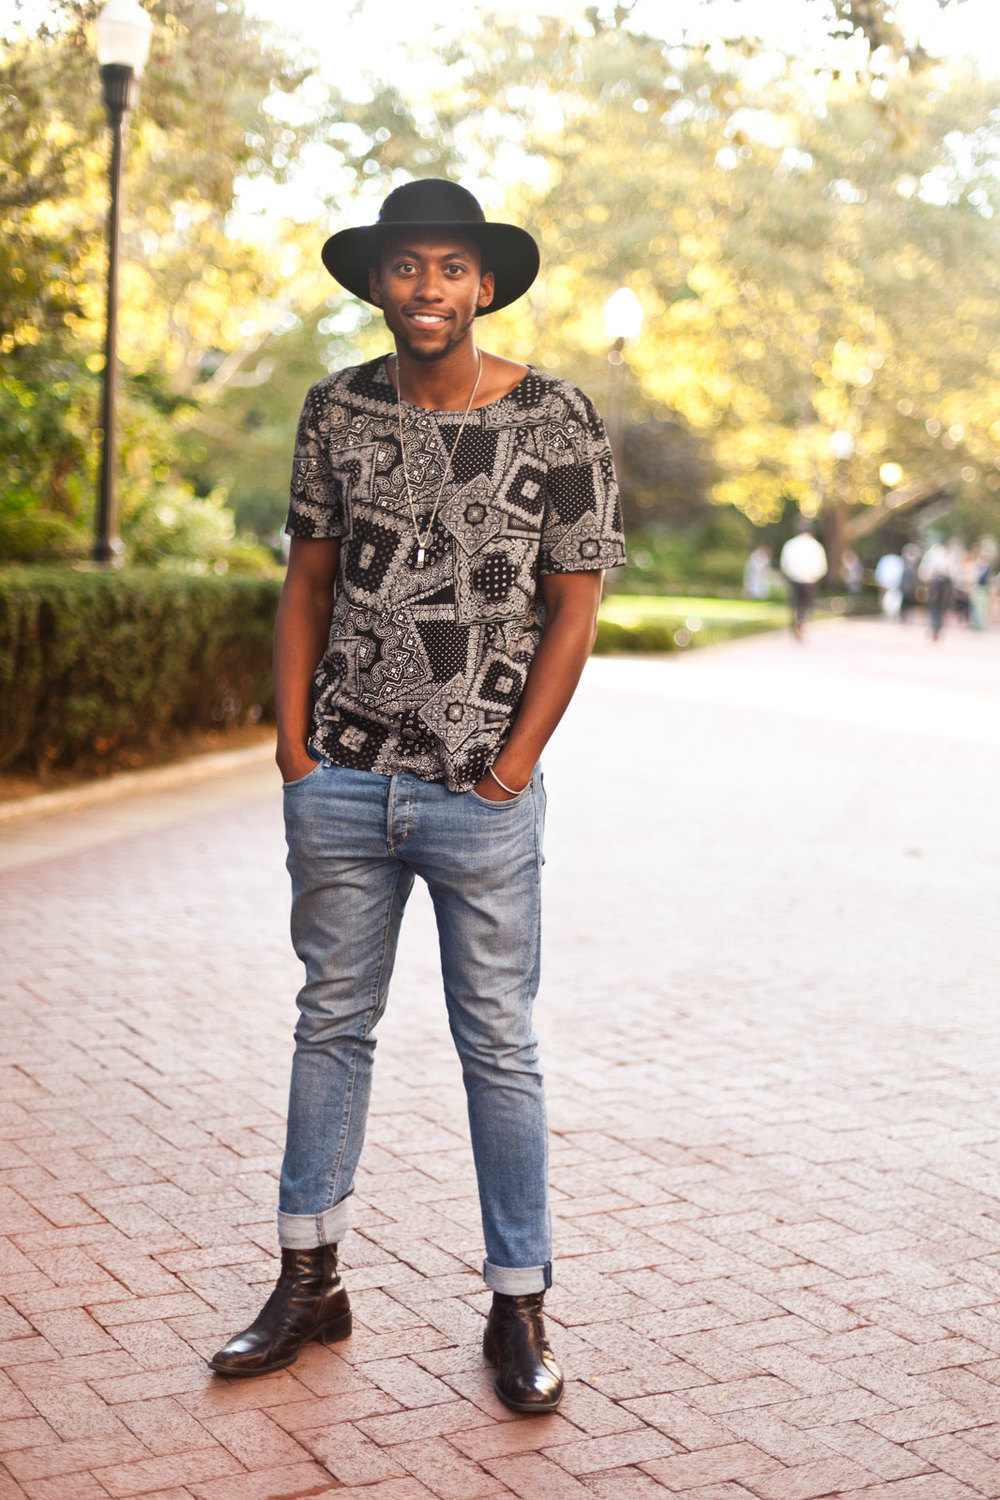 André Fuqua from Columbia H&M shirt and jeans and an Urban Outfitters hat